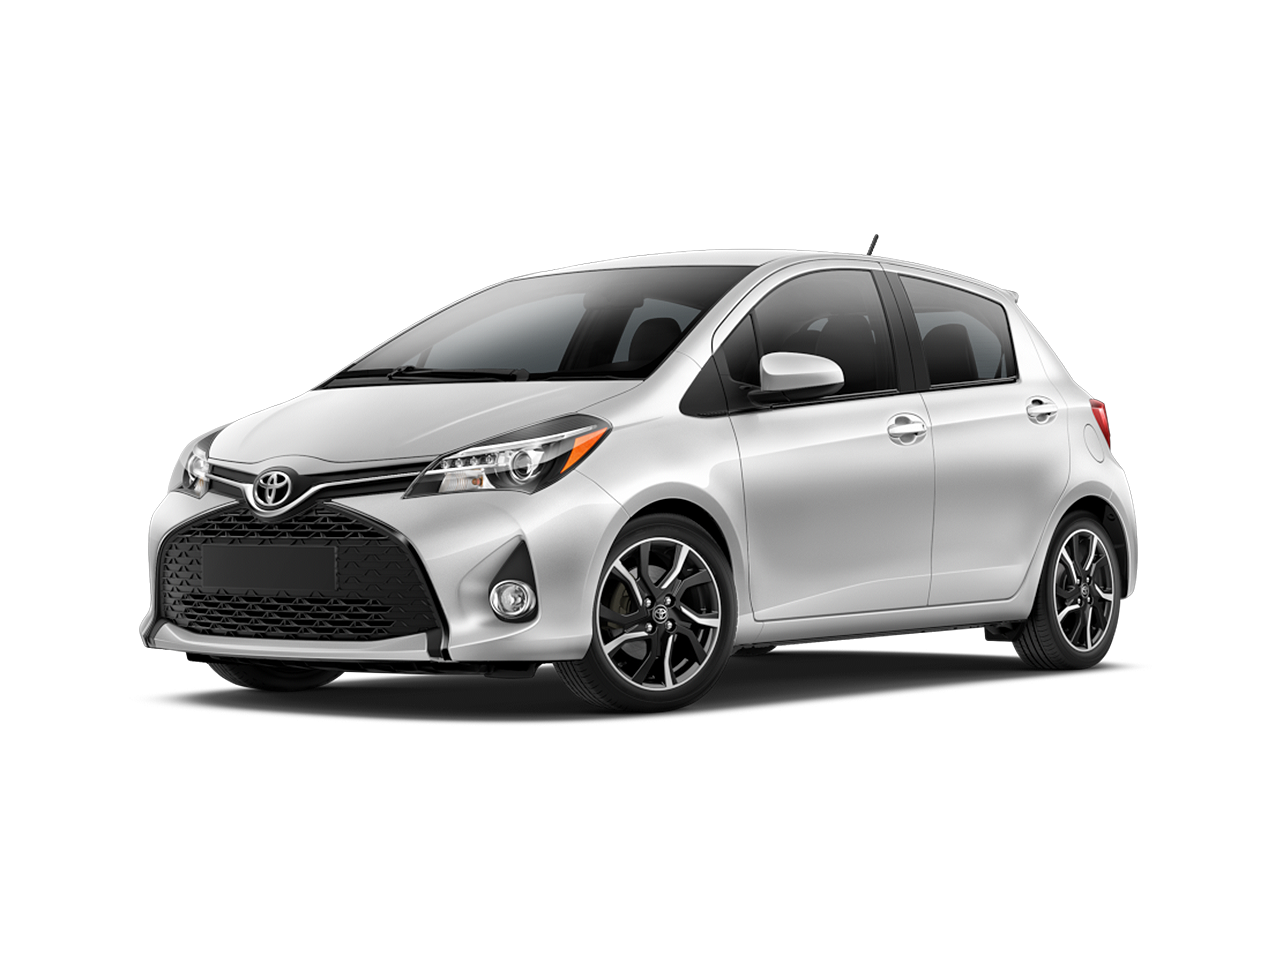 2017 toyota yaris for sale near san diego toyota of el cajon. Black Bedroom Furniture Sets. Home Design Ideas